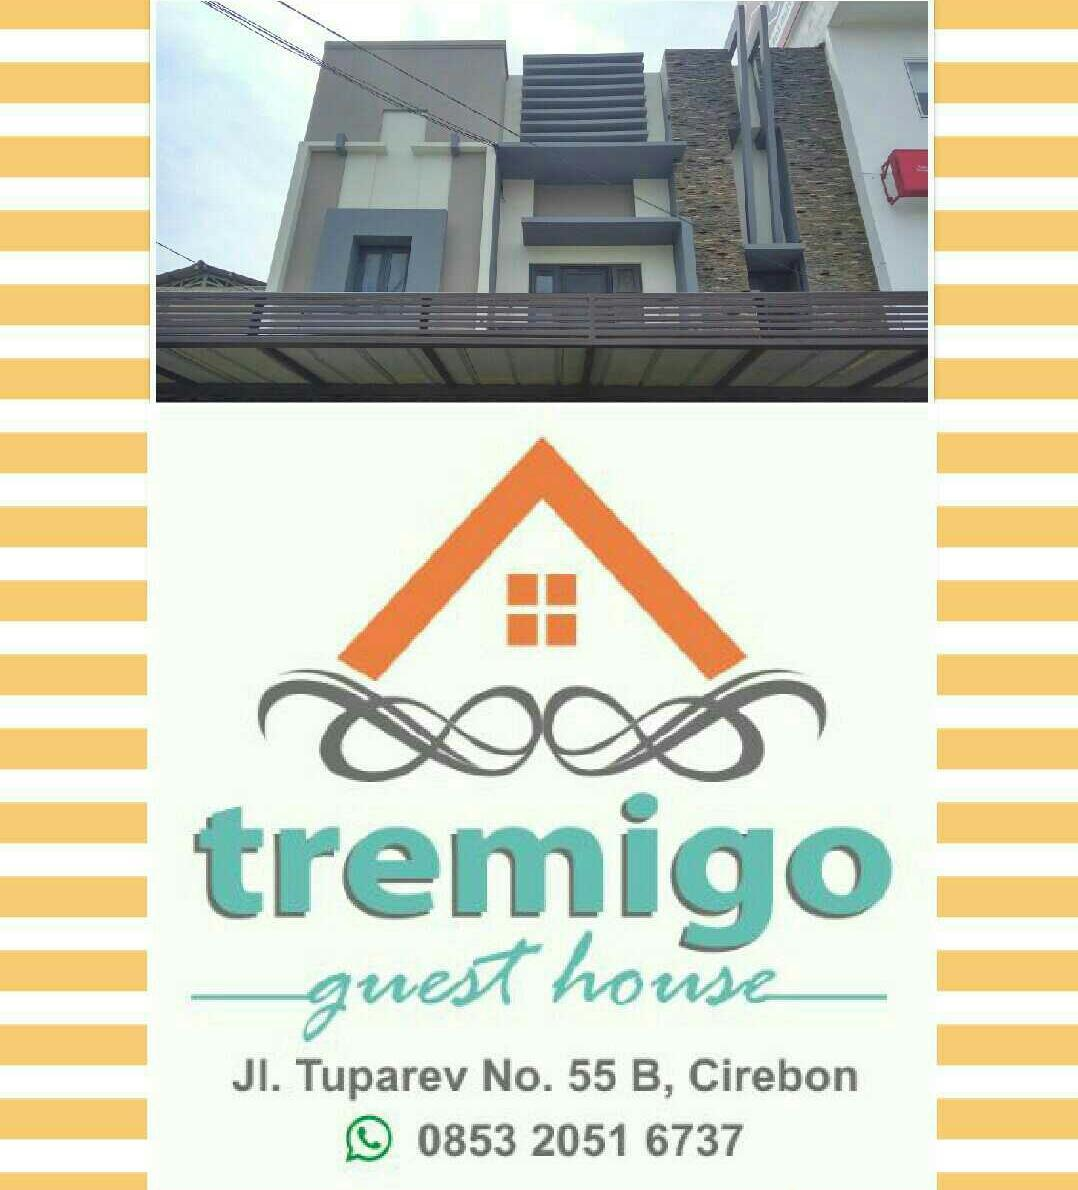 About Tremigo Guest House